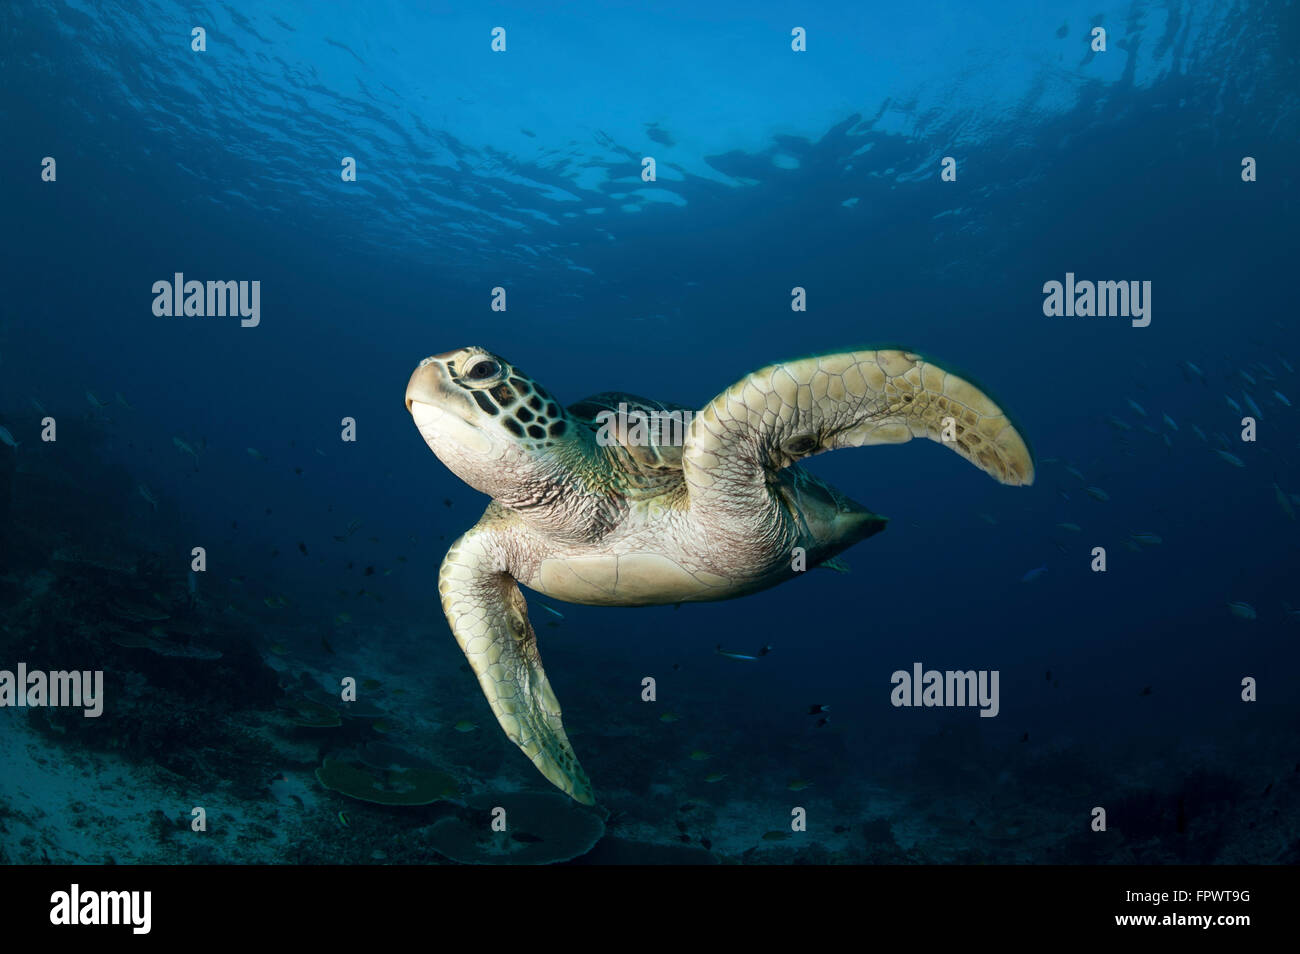 A green turtle (Chelonia mydas) swimming in Komodo National Park, Indonesia. Stock Photo